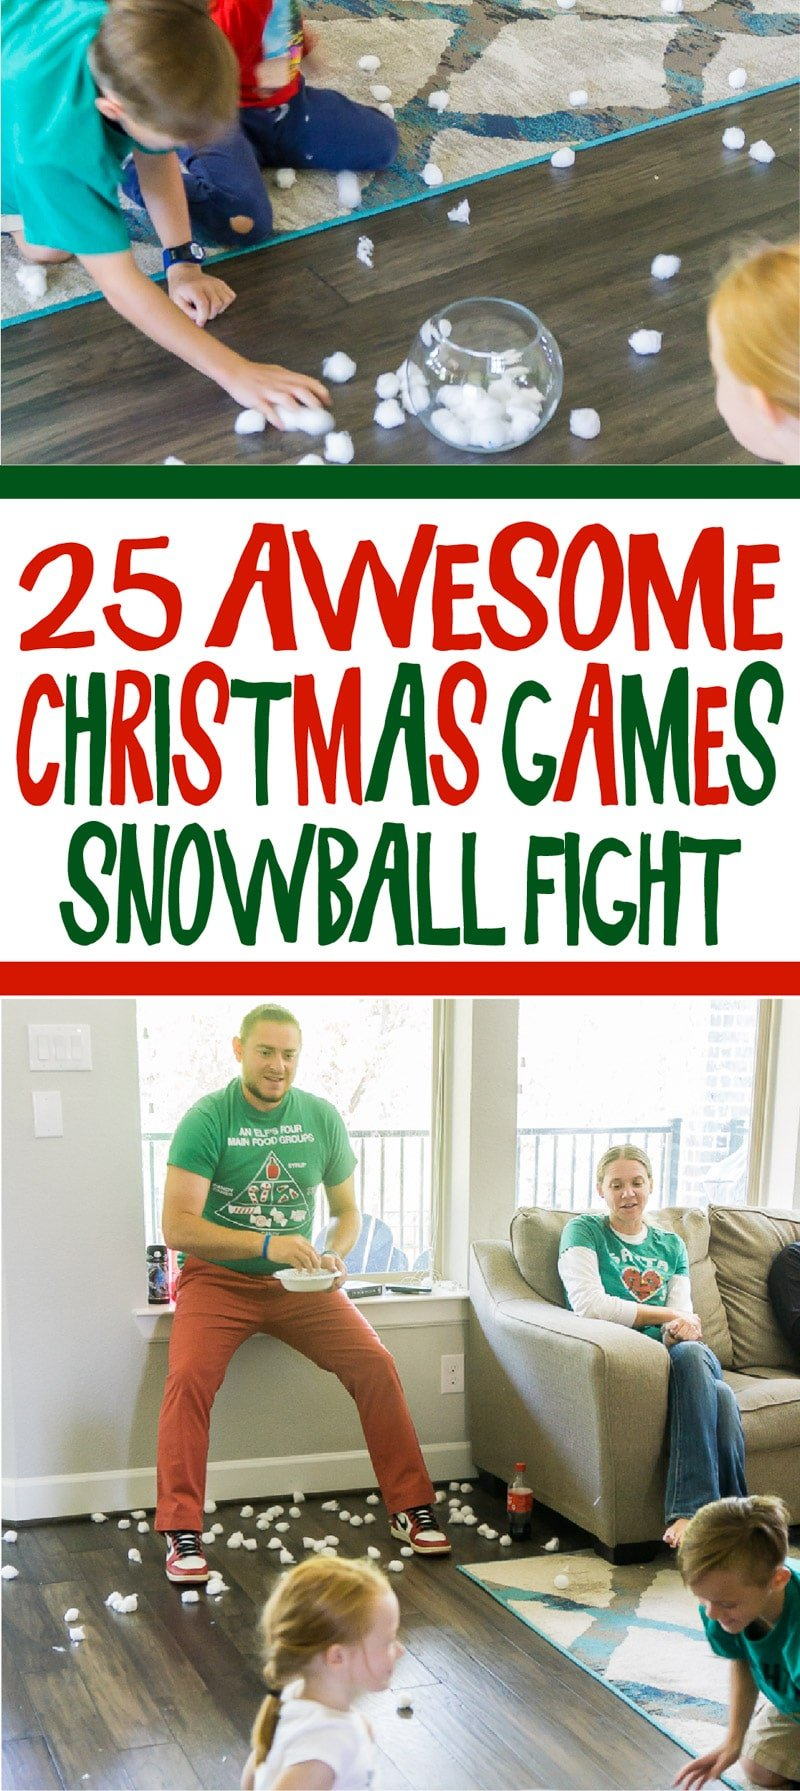 Funny Christmas games played minute to win it style